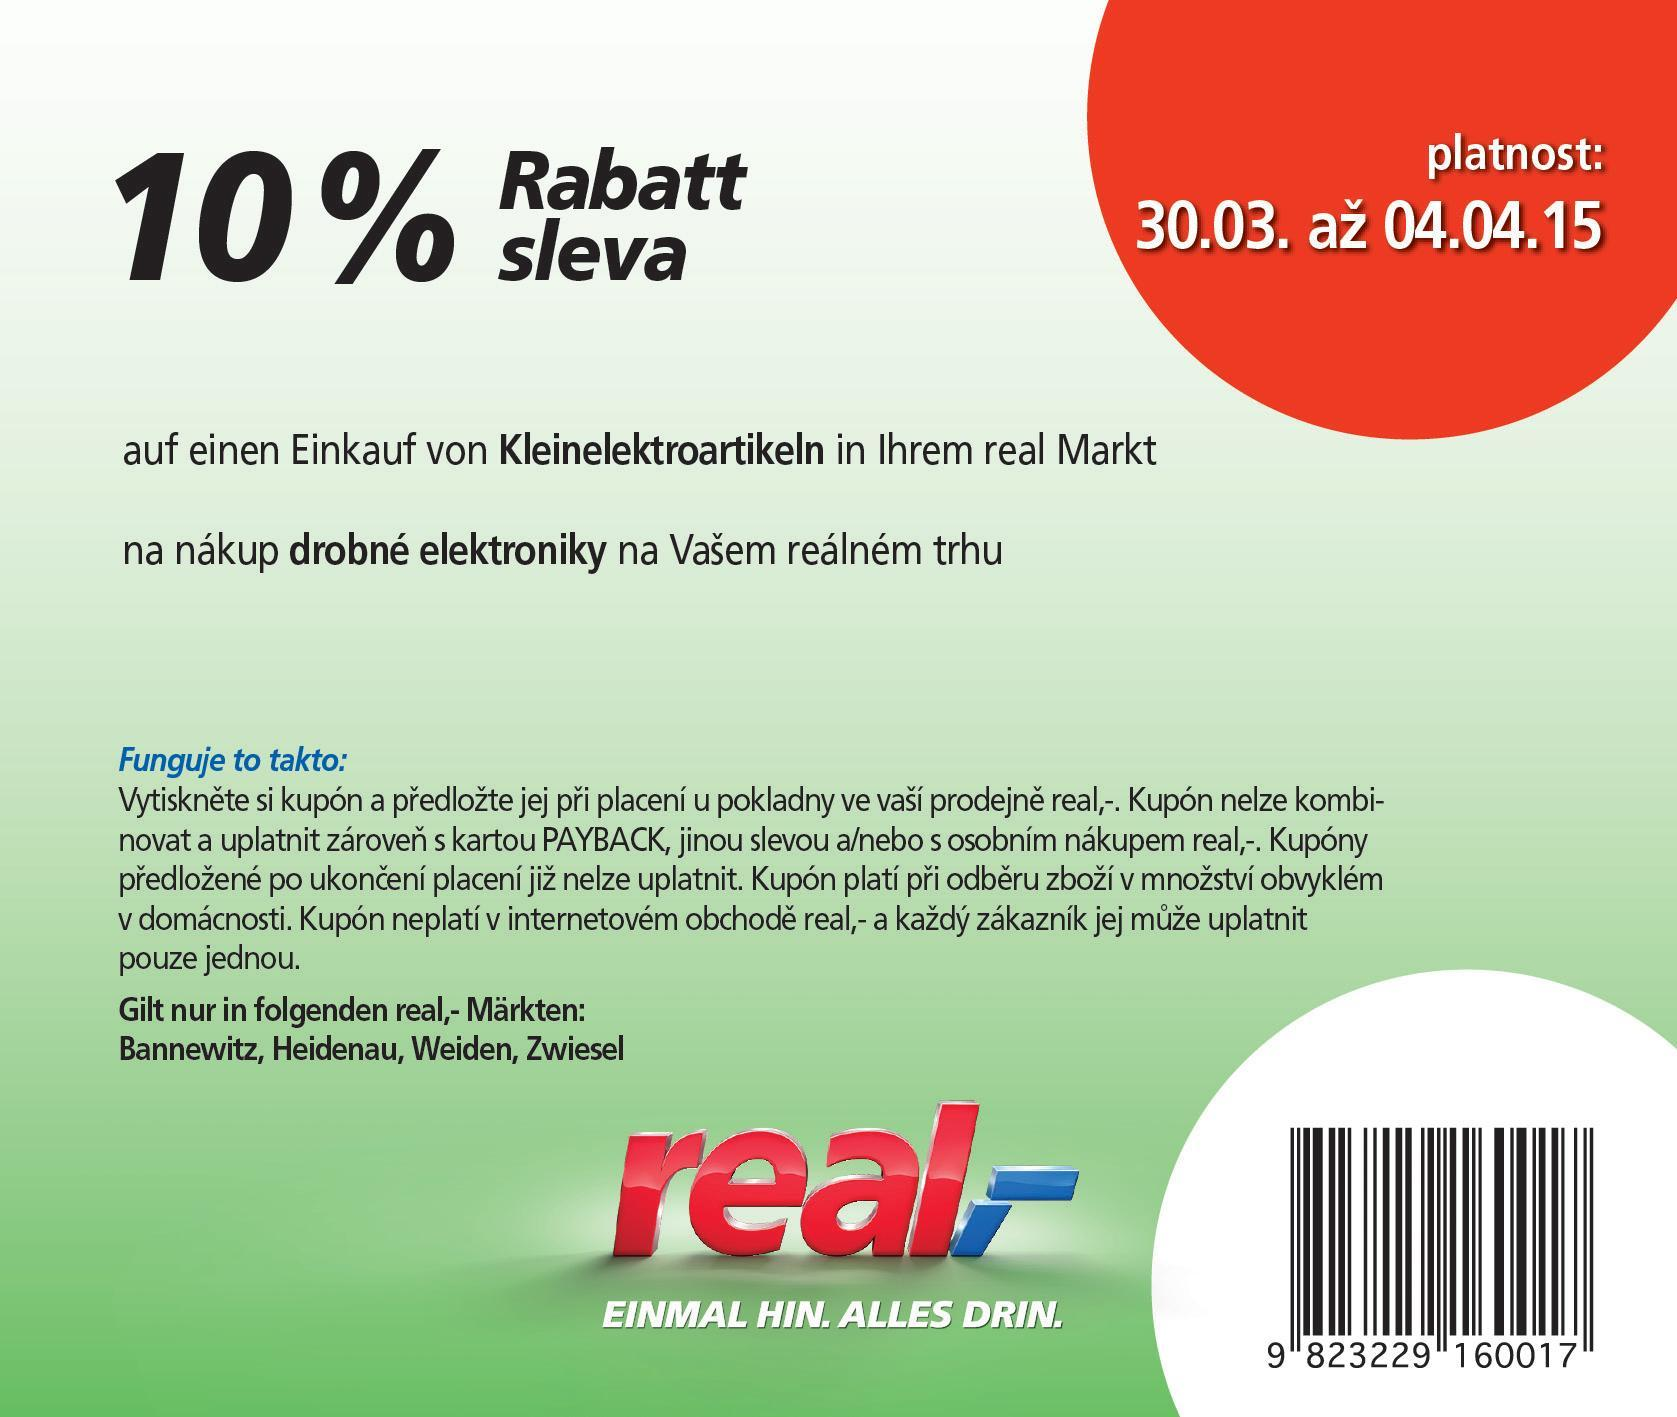 coupons_apr_2015_cz-pdaazf.jpg